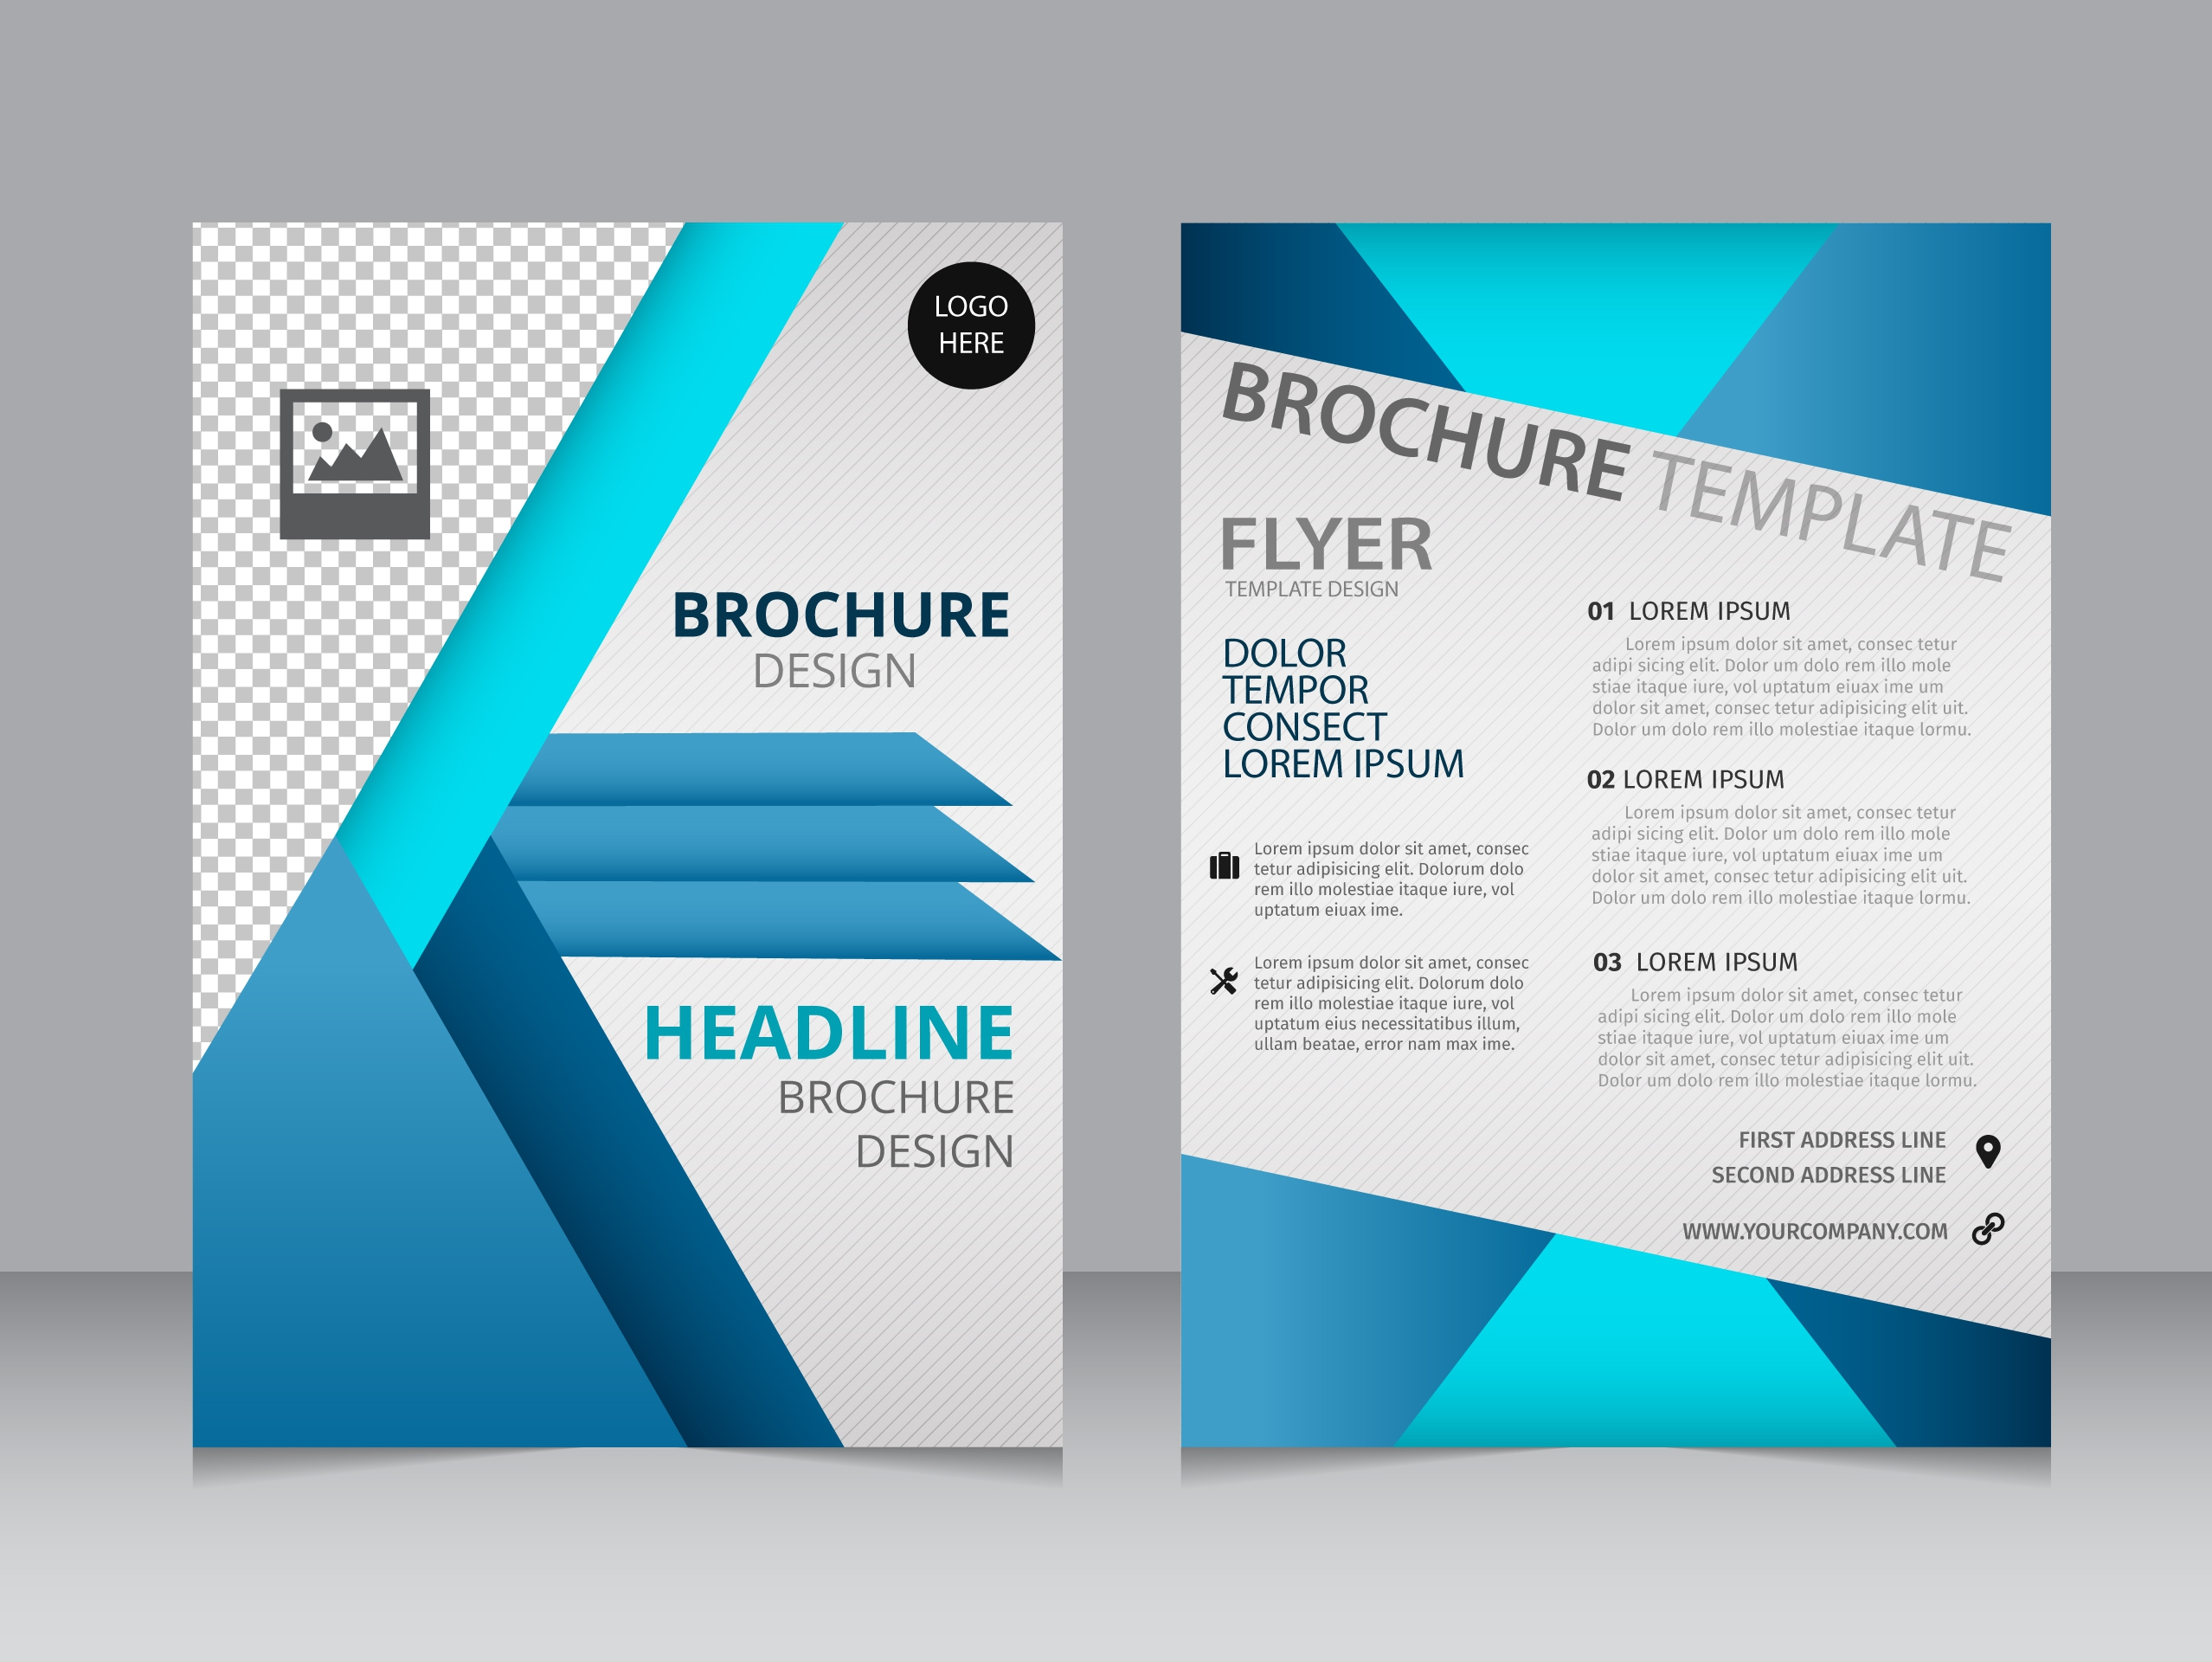 free design brochure templates - 11 free sample travel brochure templates printable samples